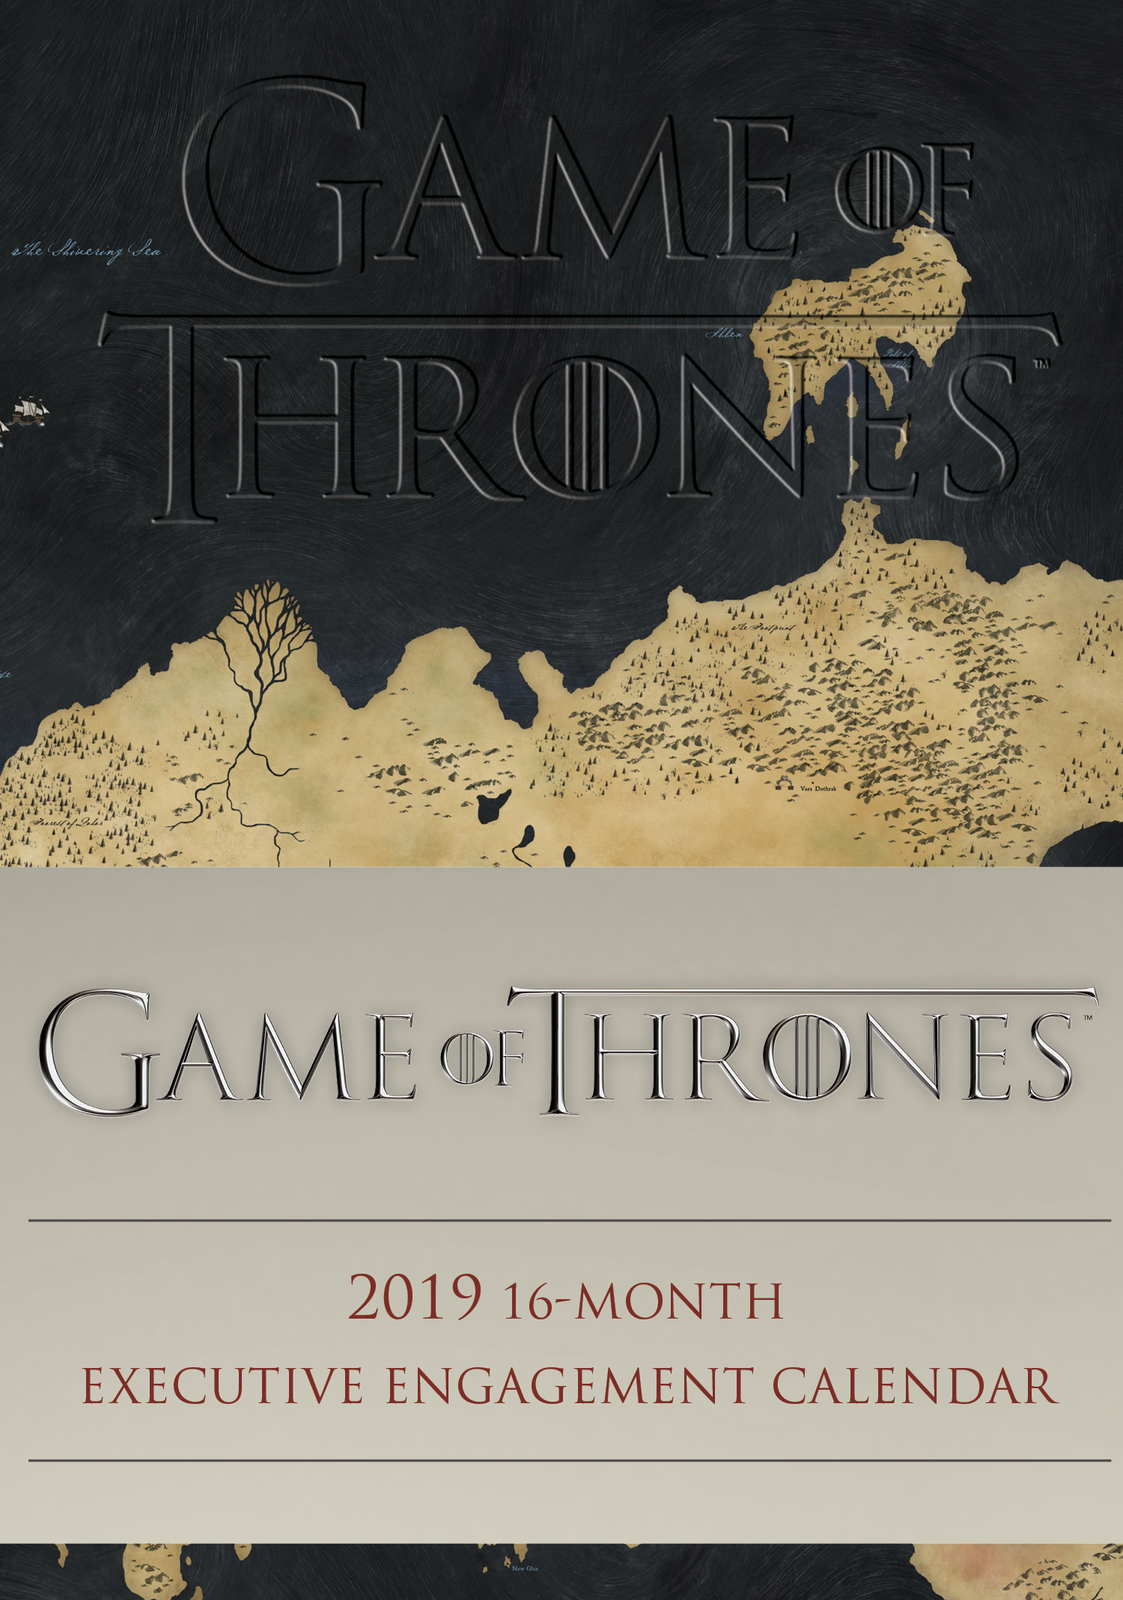 Game of Thrones 2019 16-Month Executive Engagement Calendar by HBO image